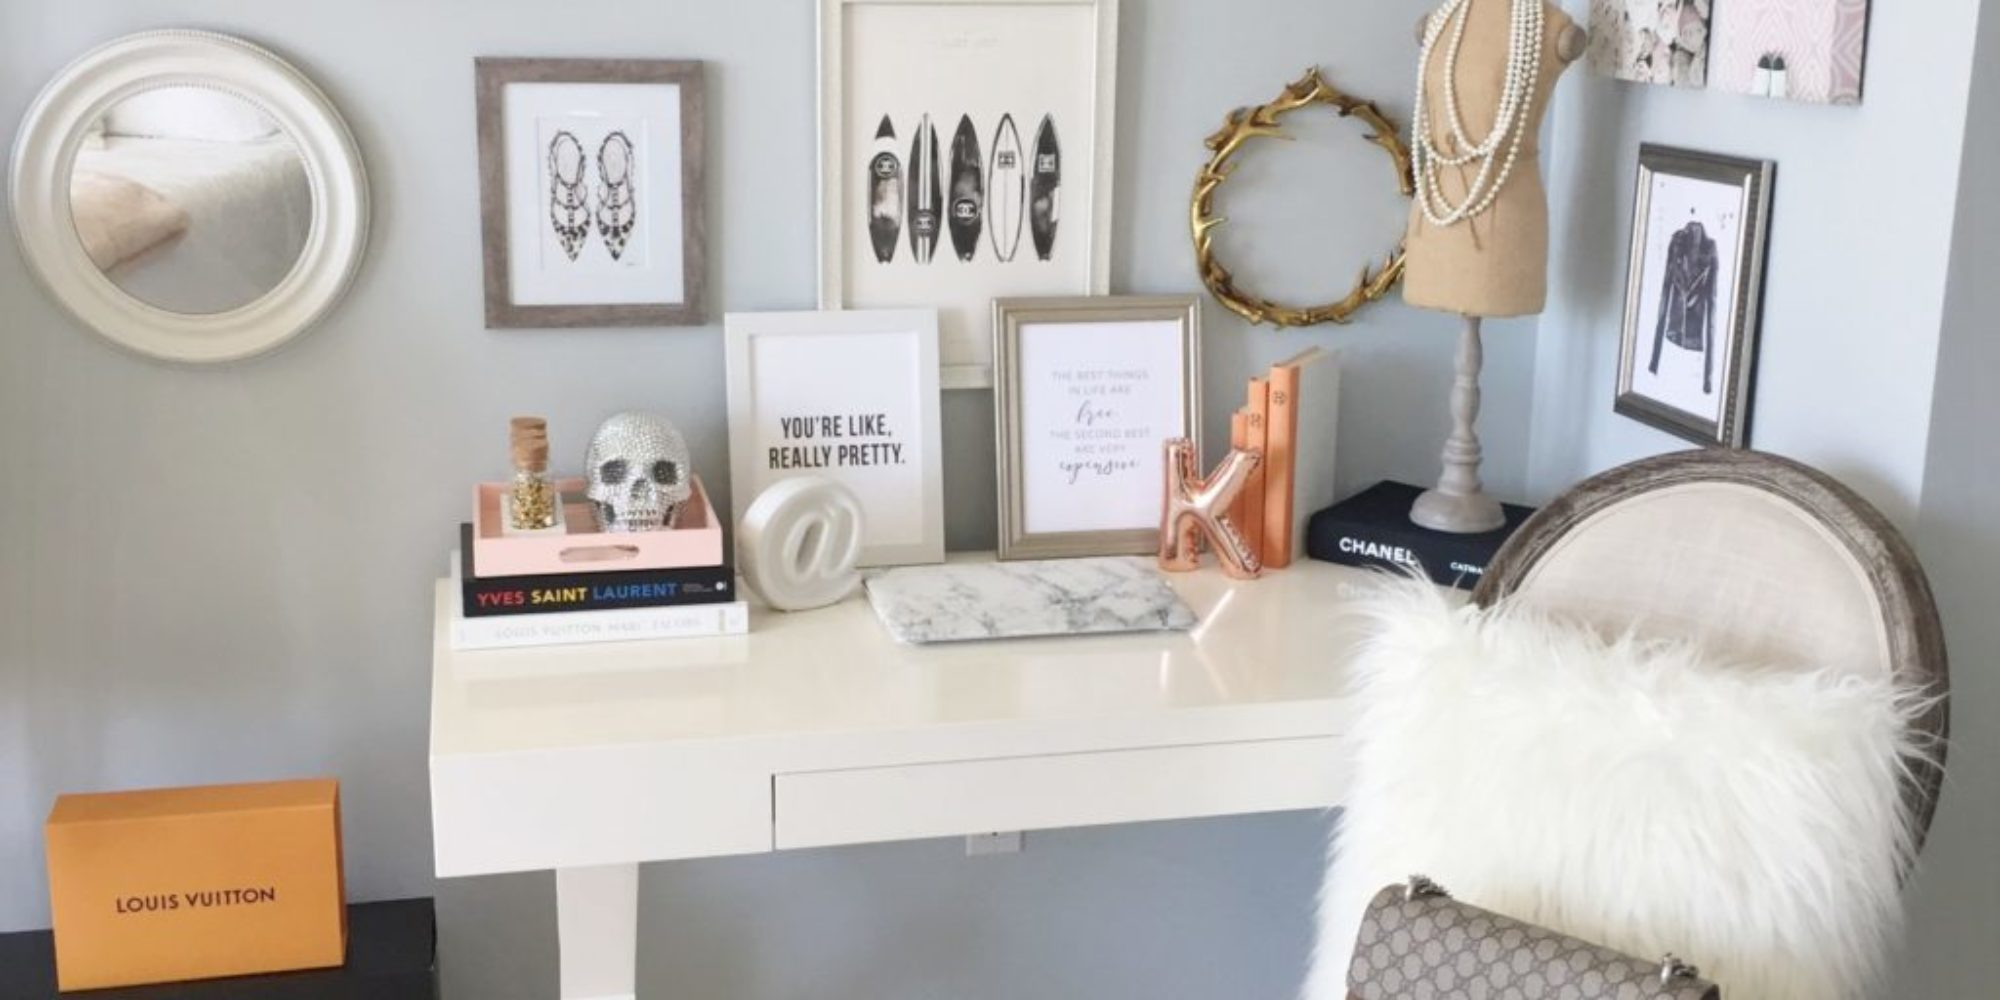 styled by kasey work space